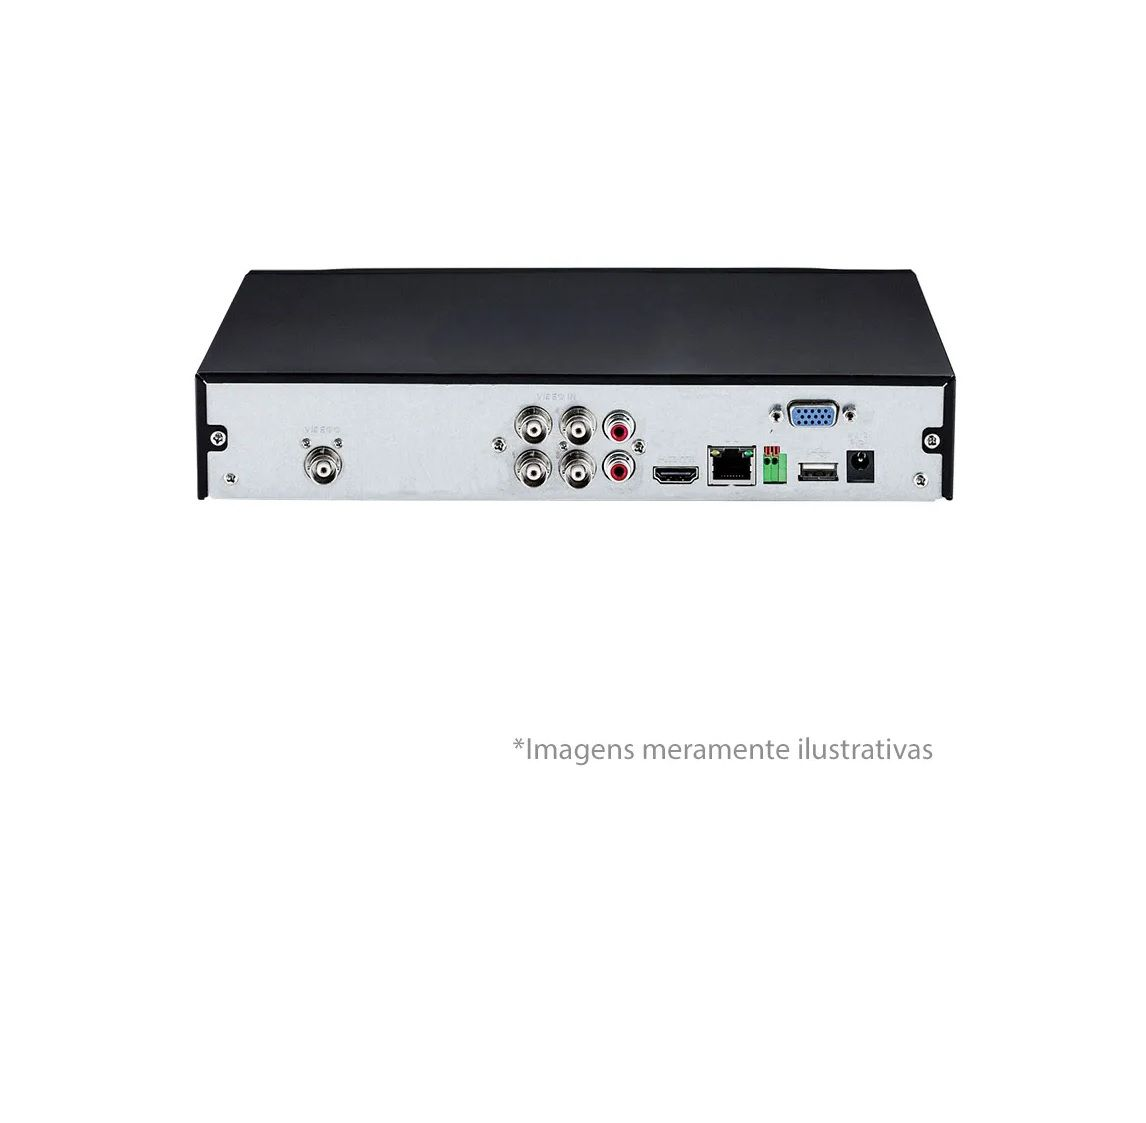 DVR Stand Alone Multi HD Intelbras MHDX-1104 - 4 Canais 1080p Lite + 1 Canal 2mp IP